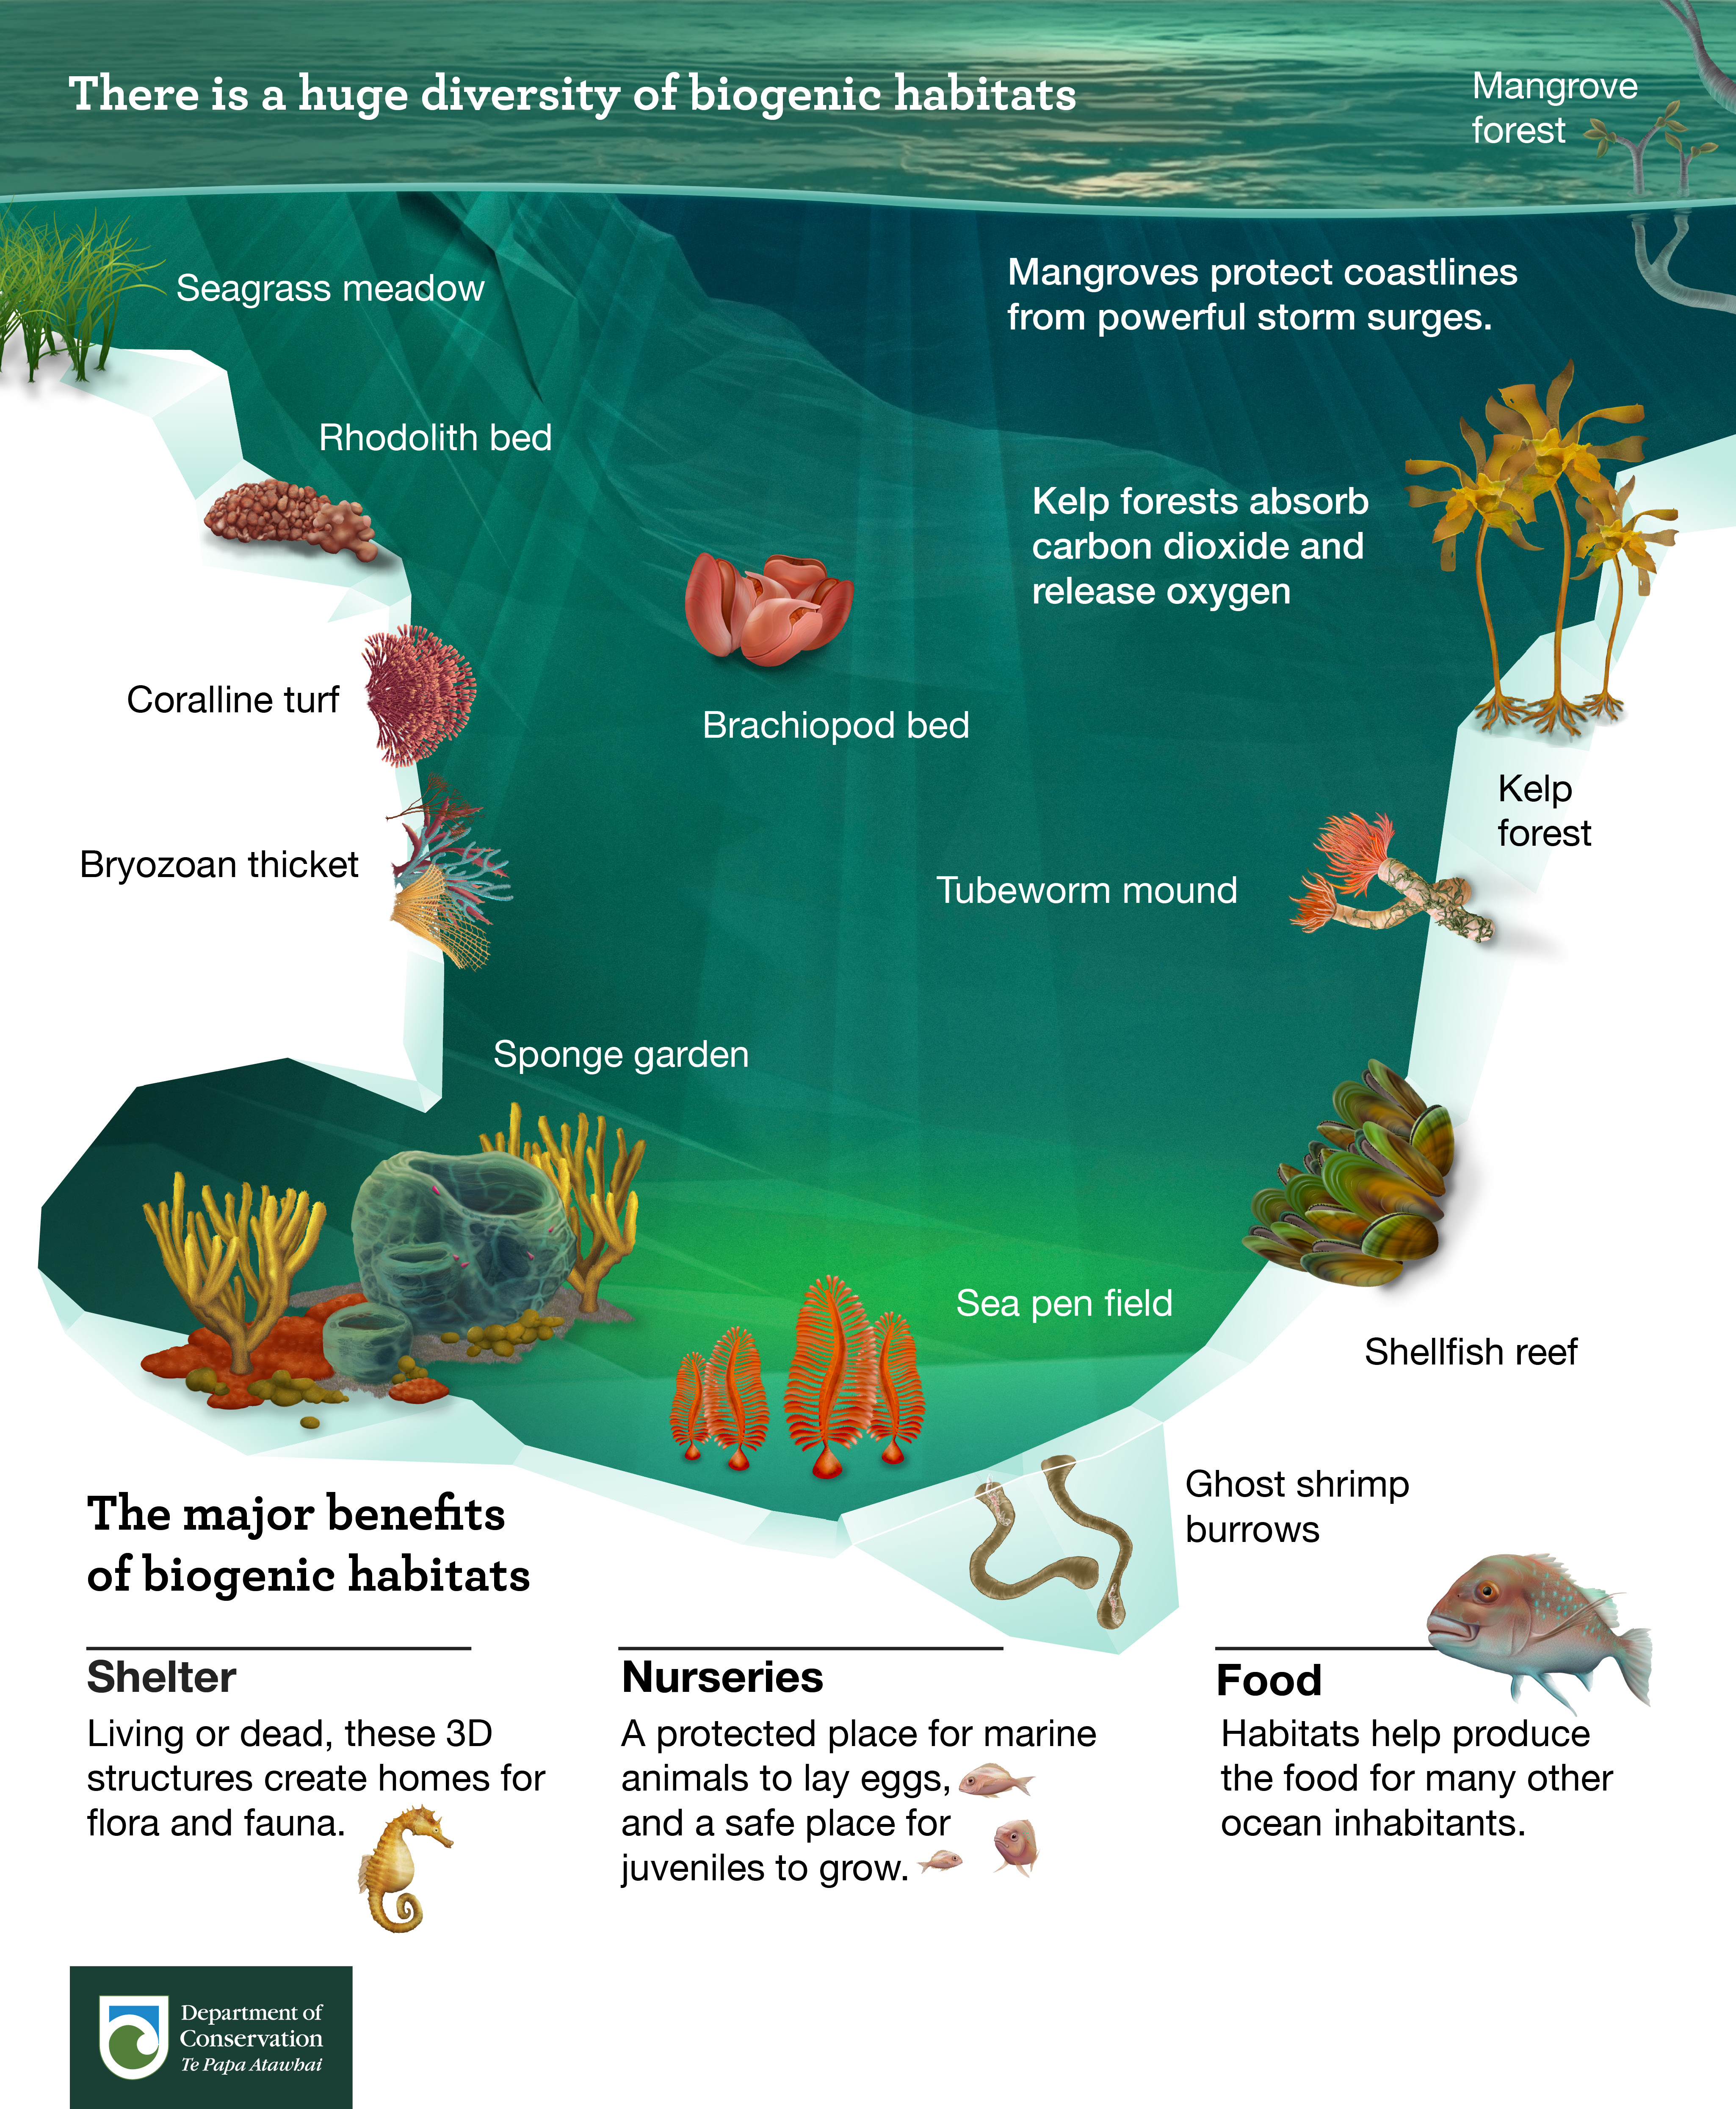 There is a huge diversity of biogenic habitats